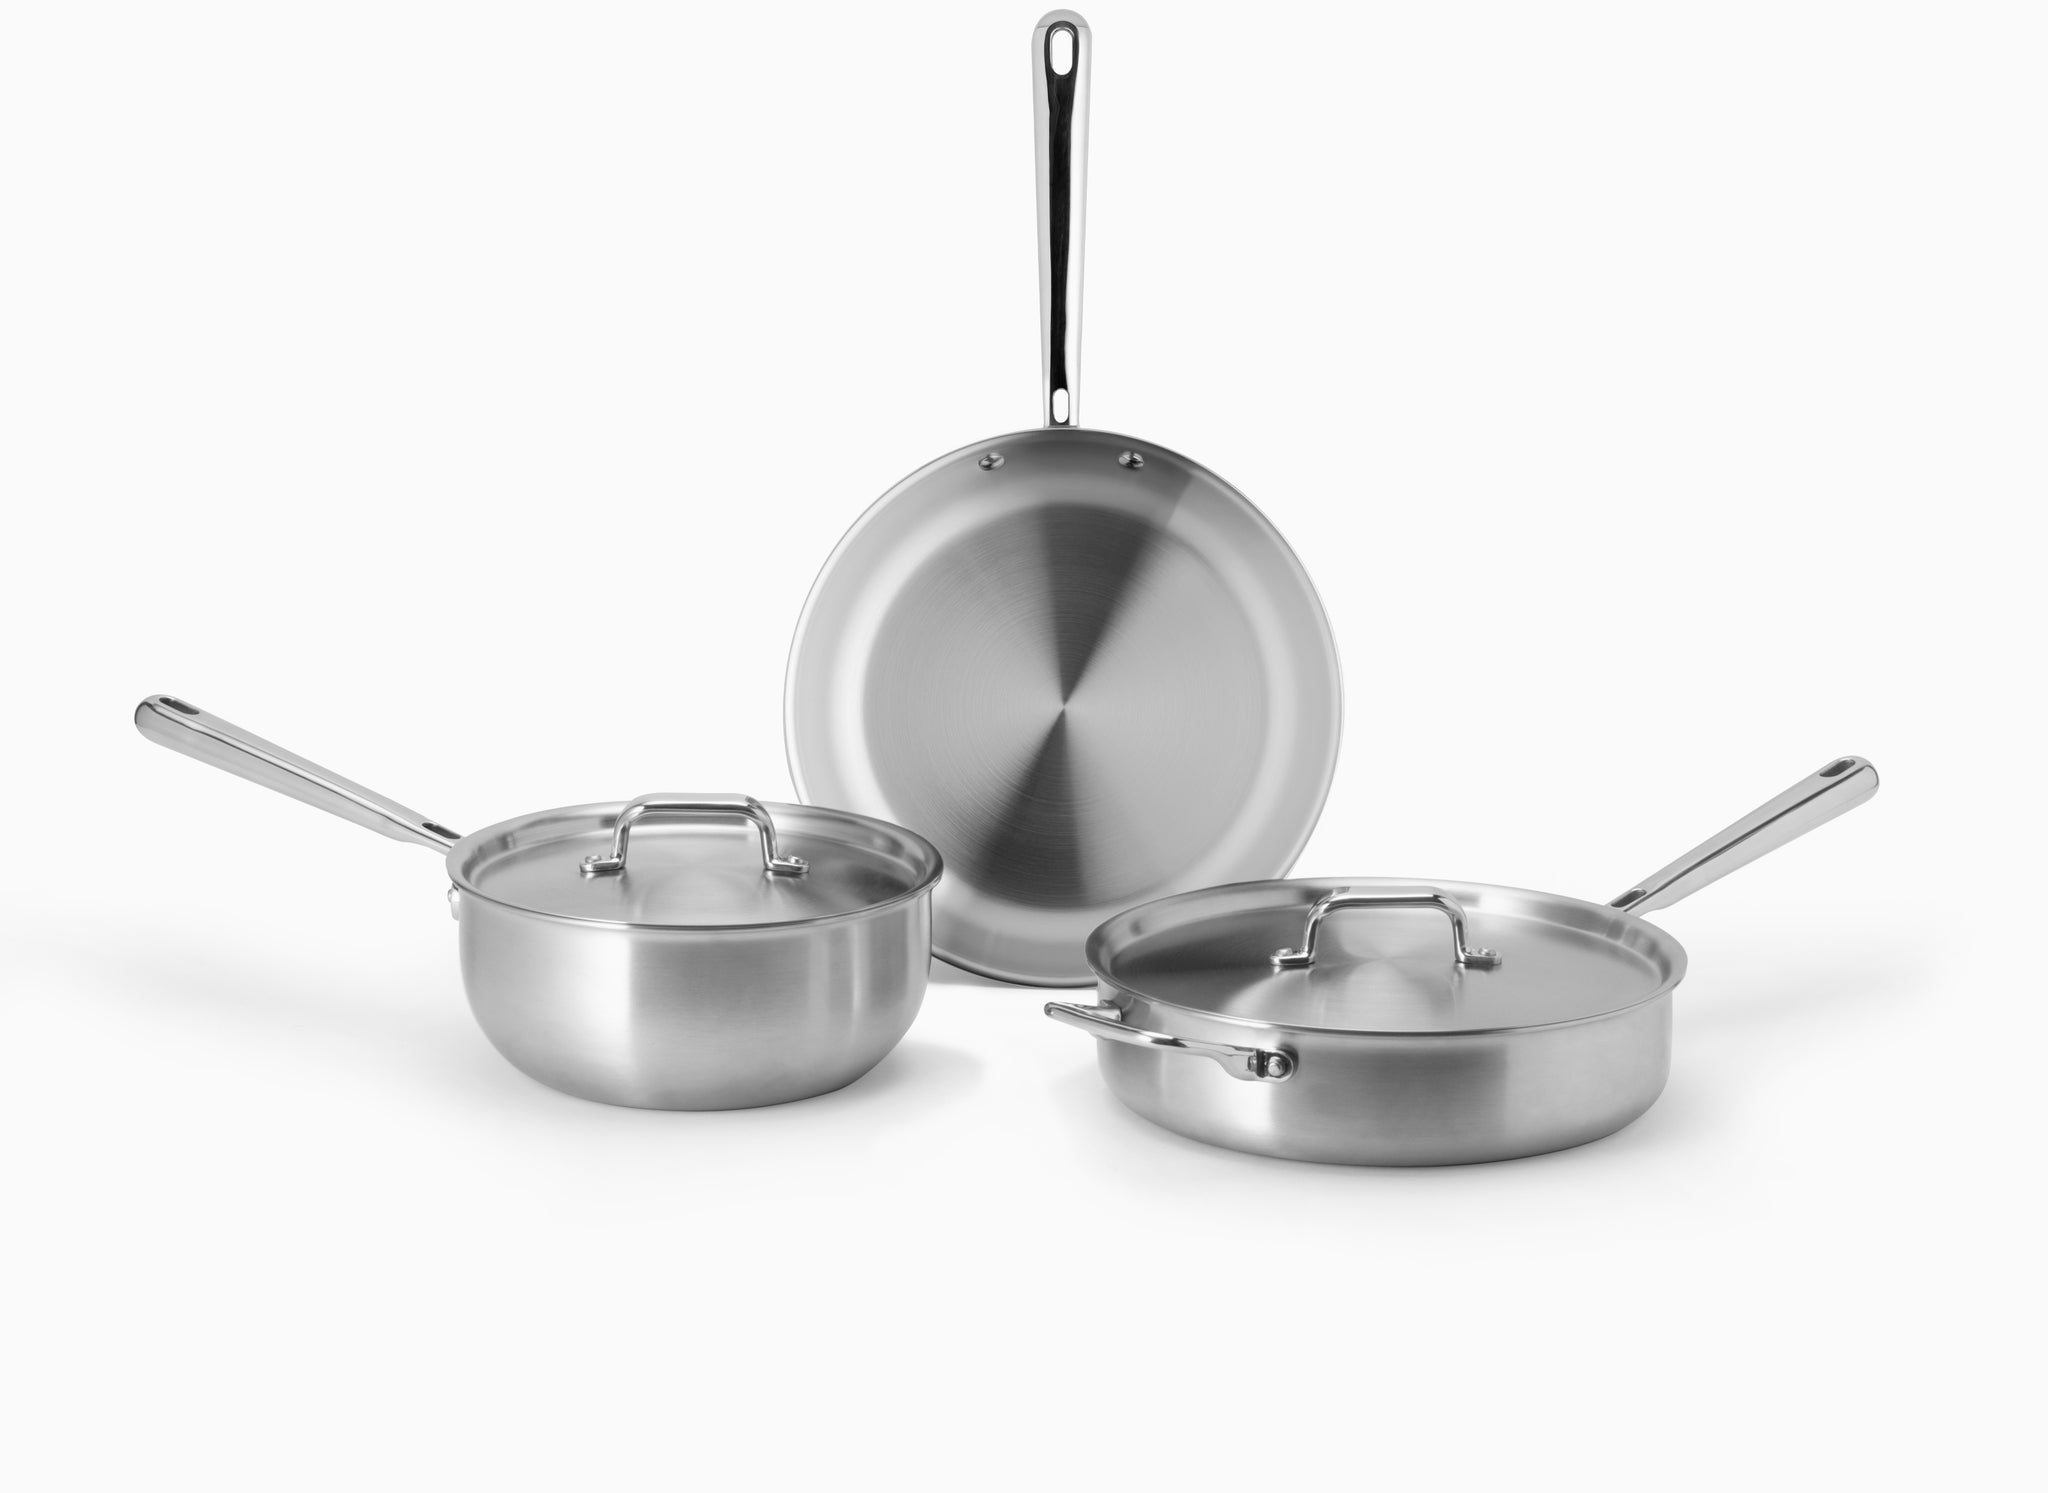 Misen starter cookeware set with saucier, skillet, and saute pan